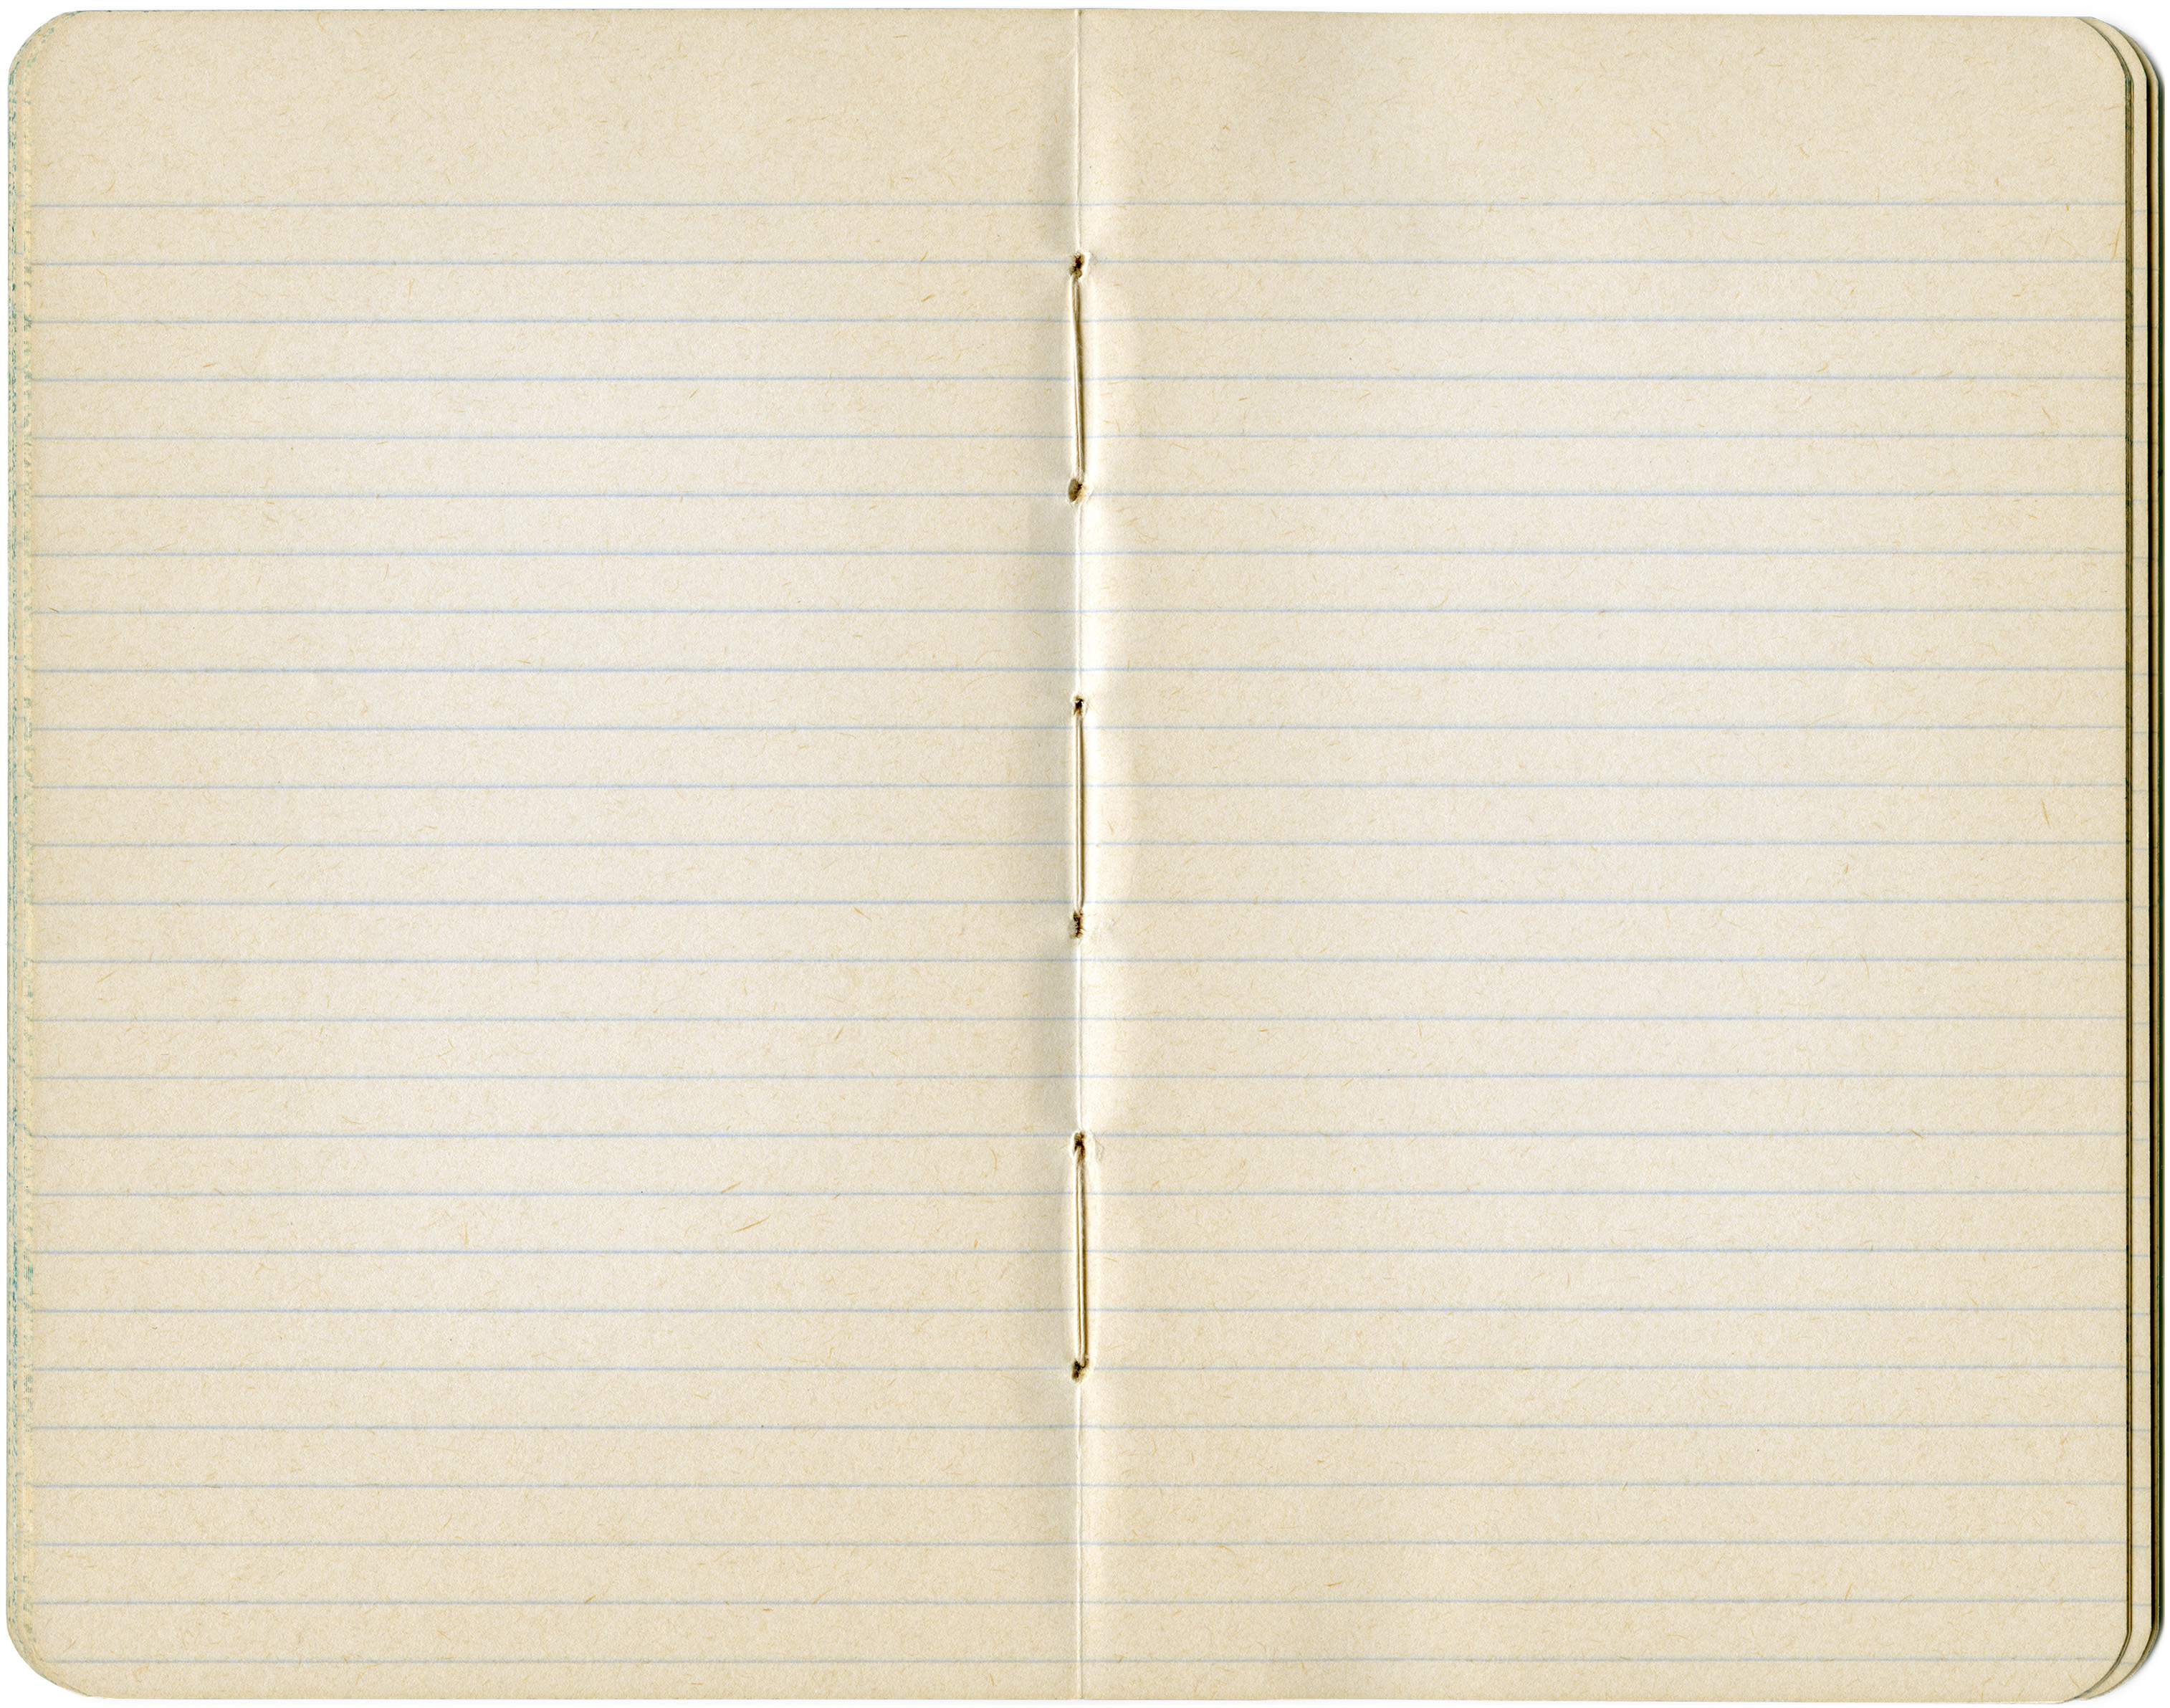 free vintage printable open notebook blank pages